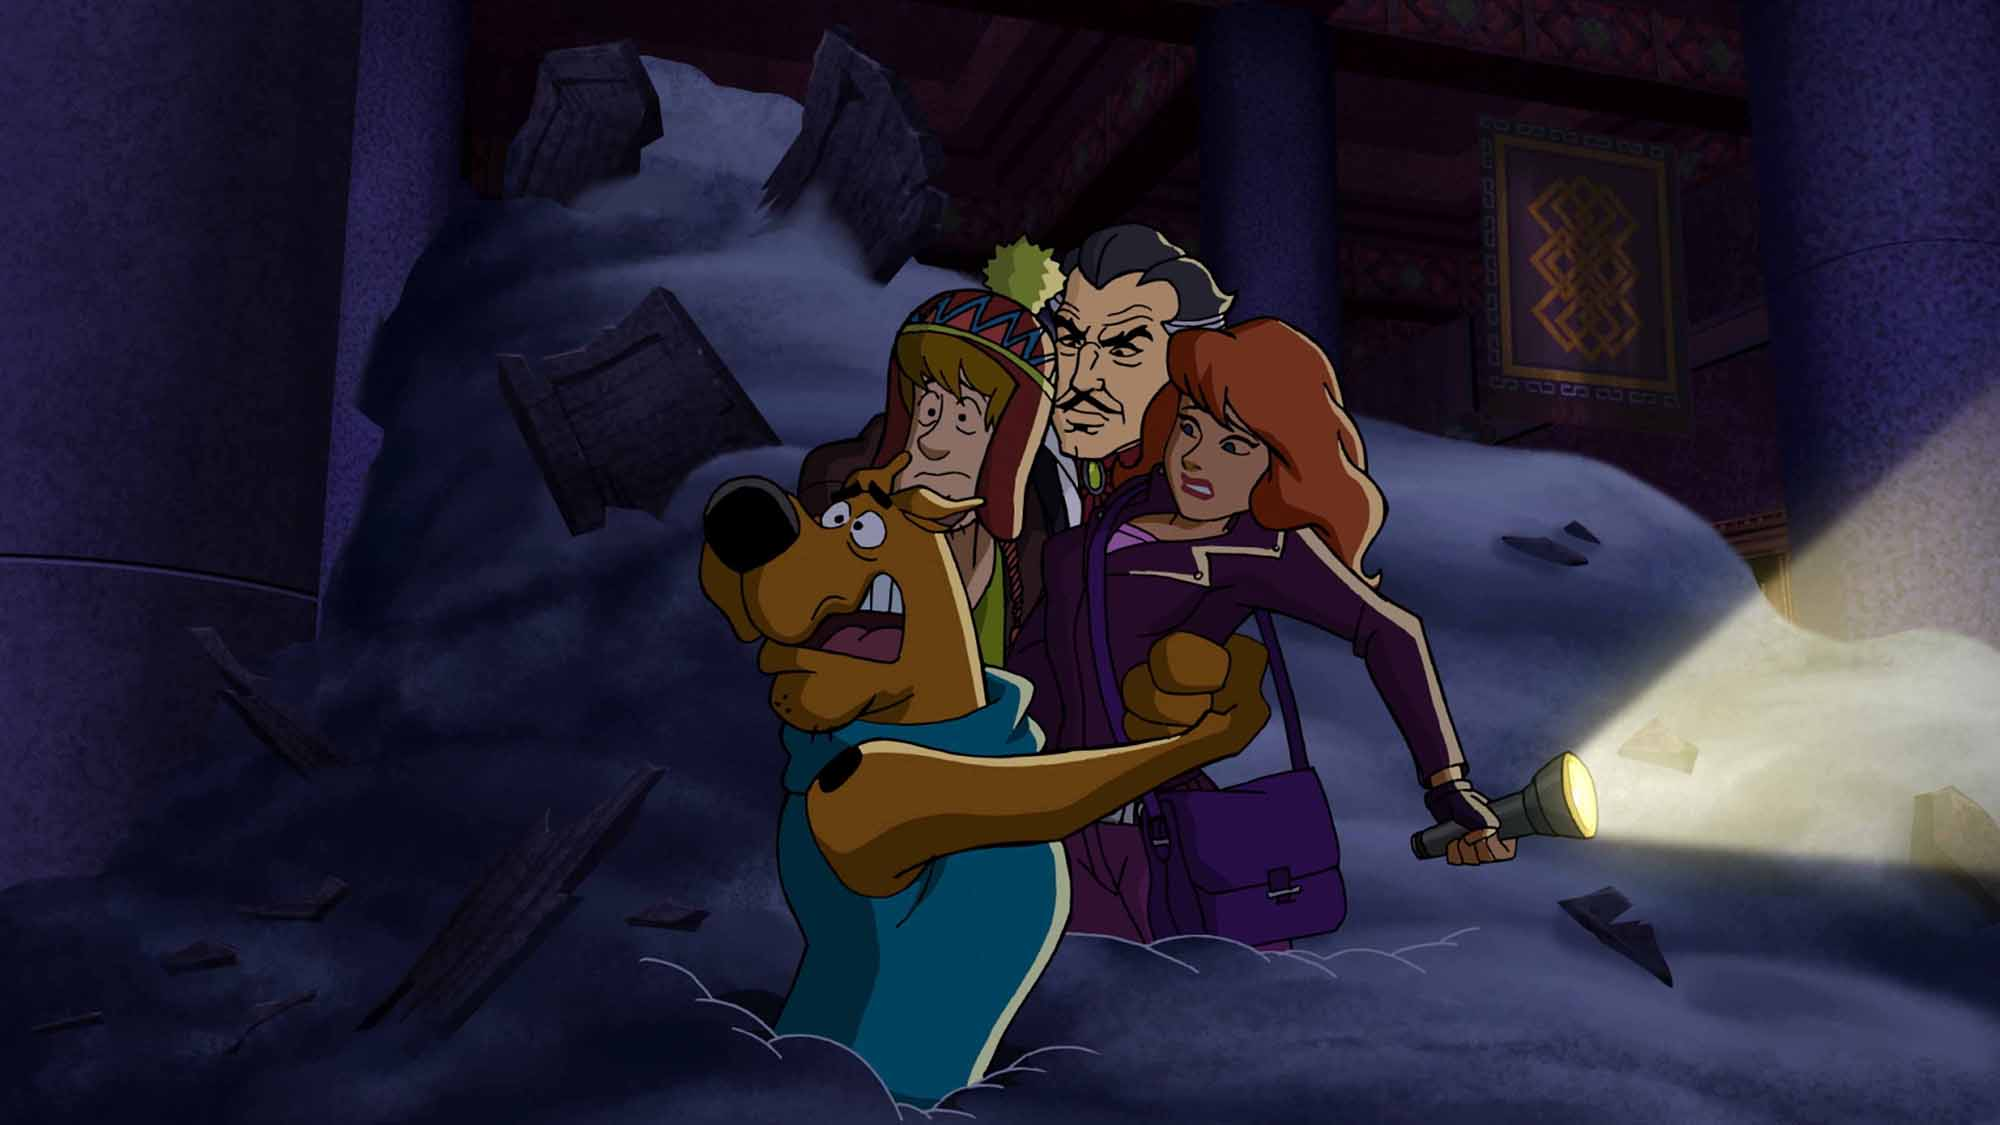 Scooby-Doo, Shaggy, Daphne and Vincent Van Ghoul